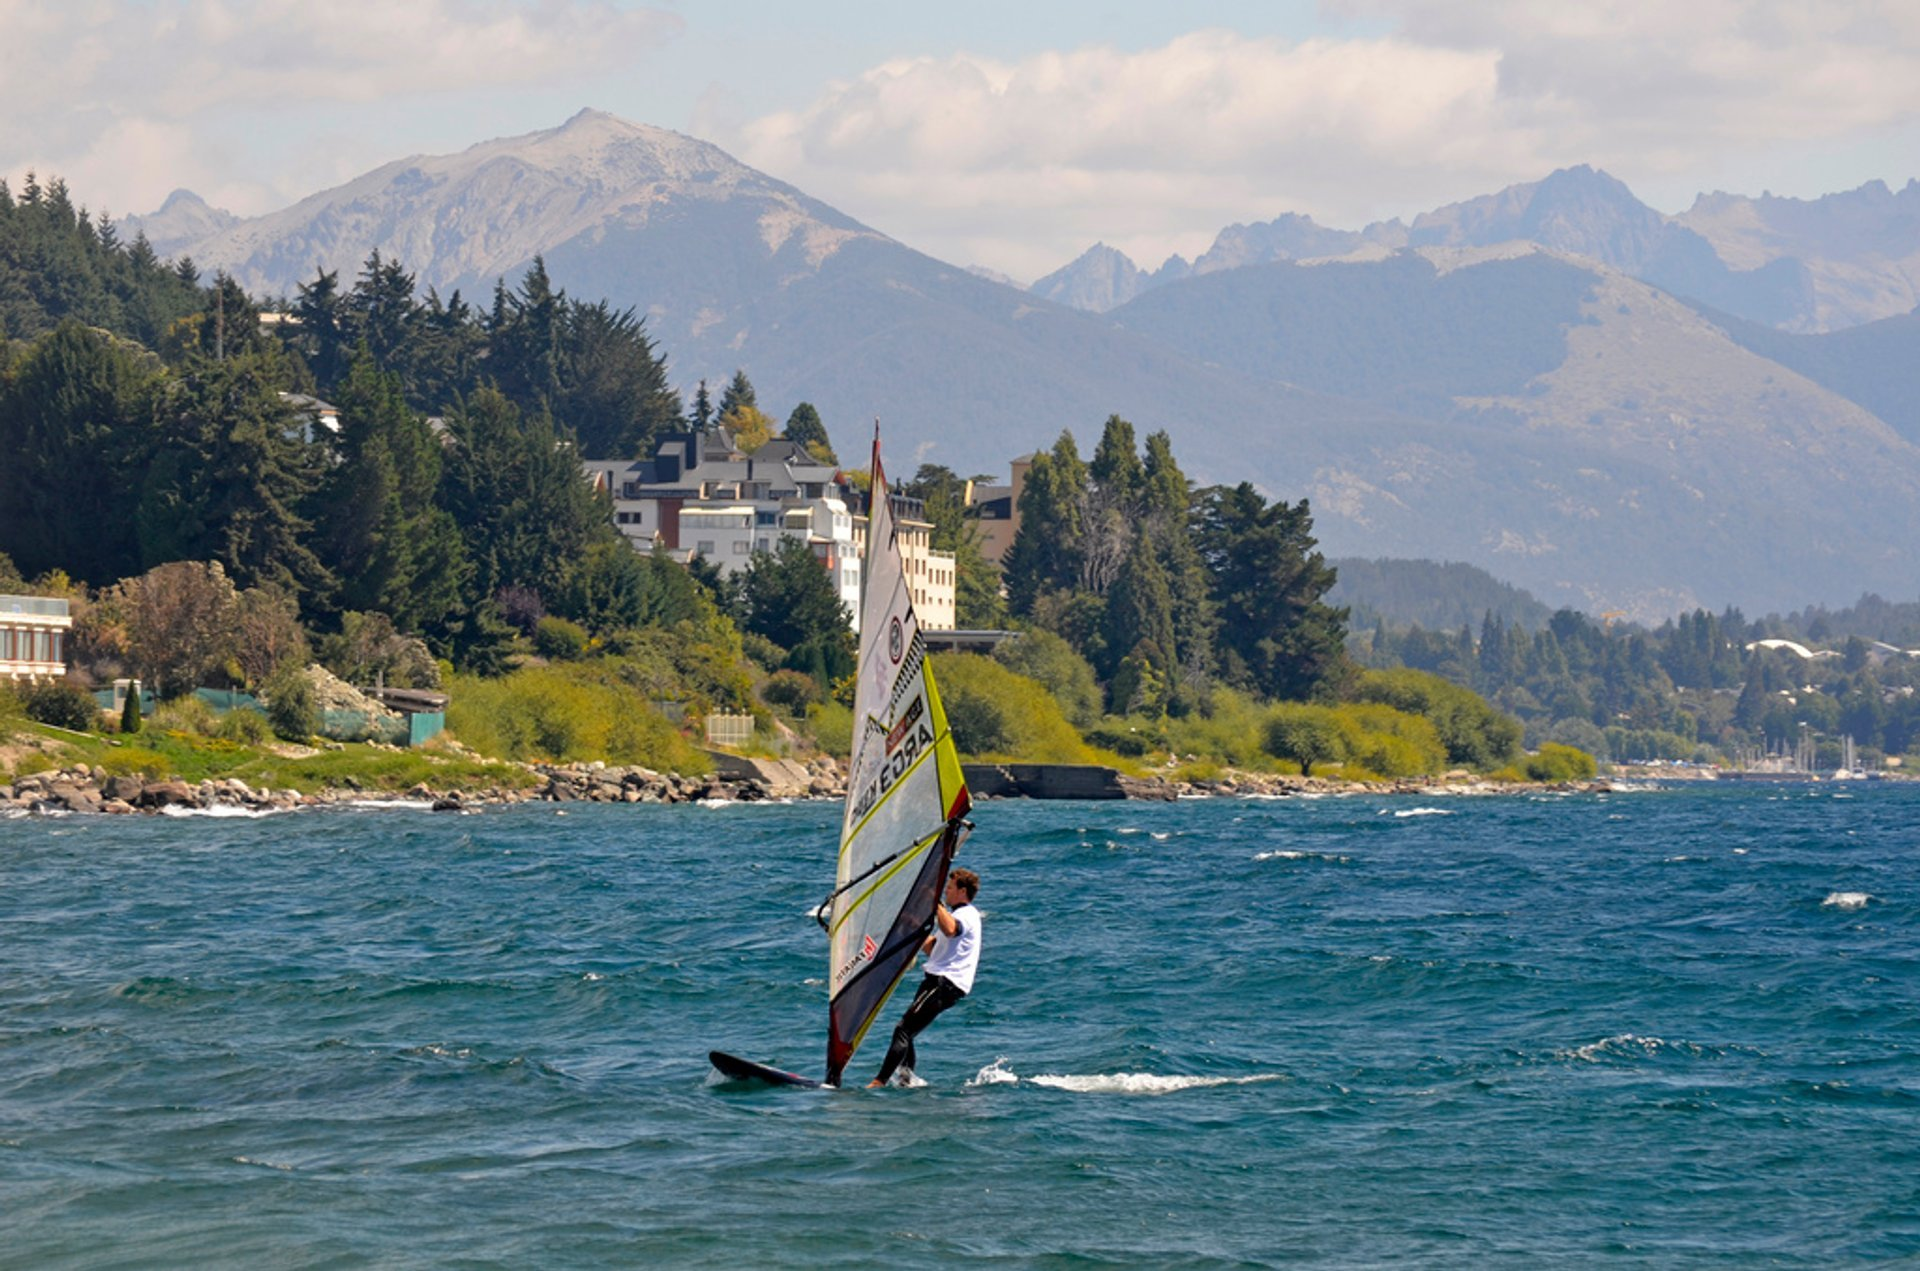 Best time to see Windsurfing in Argentina 2020